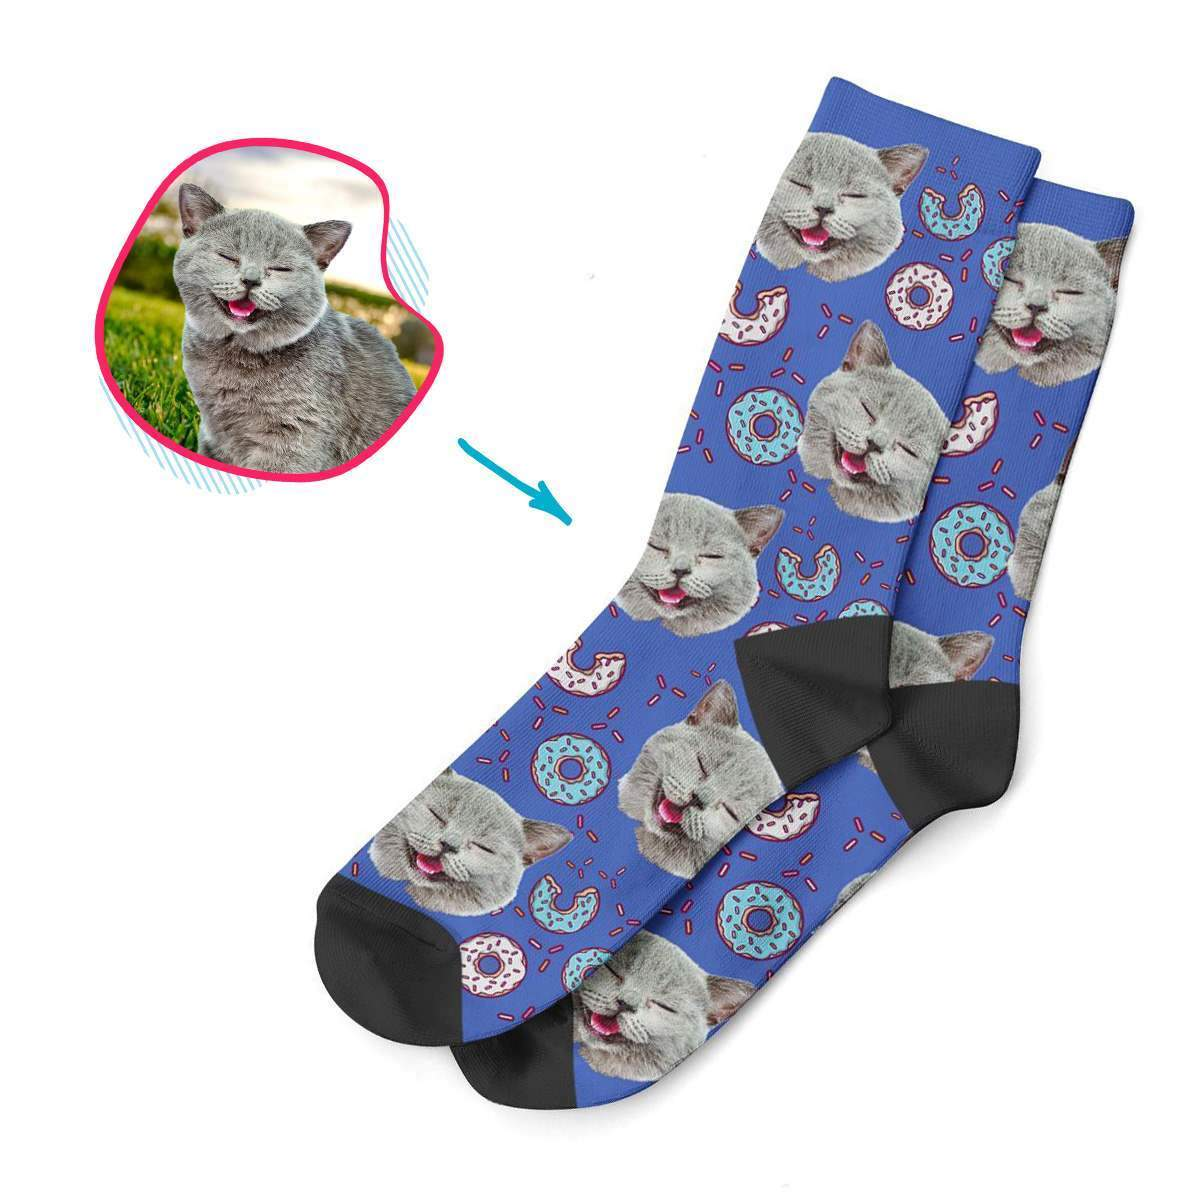 darkblue Donuts socks personalized with photo of face printed on them